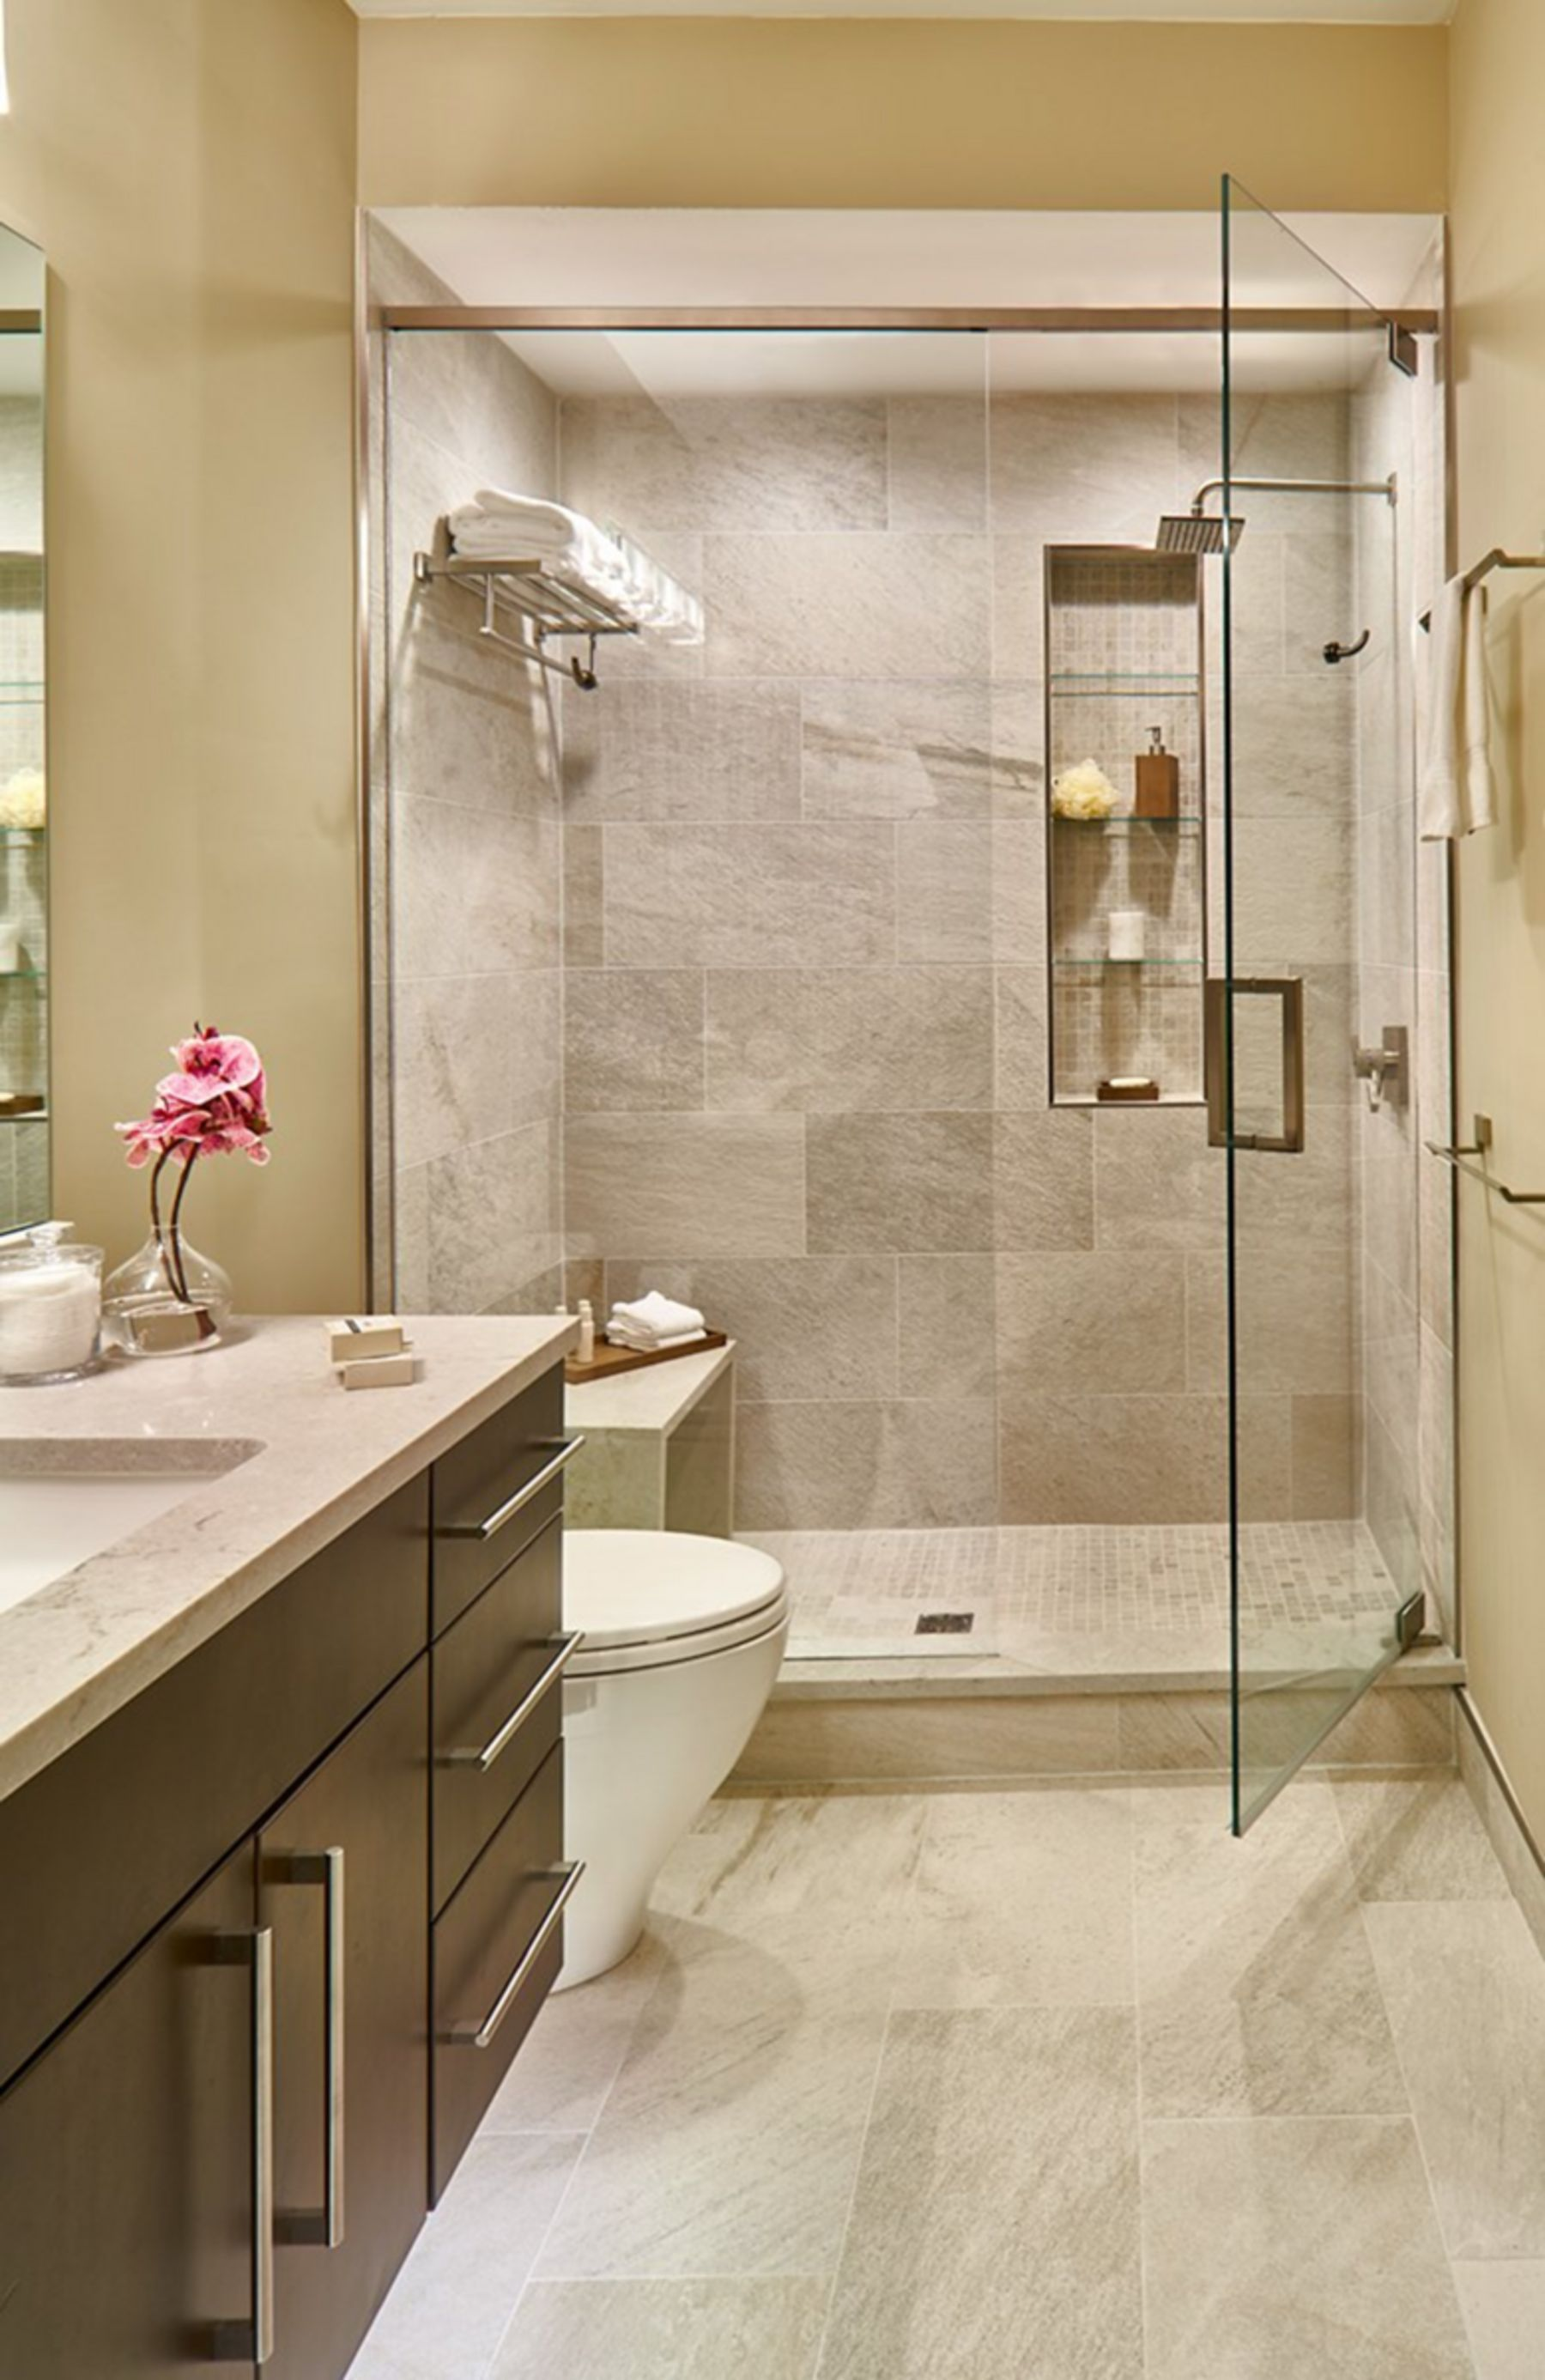 30 Awesome Modern Small Bathroom Designs For Small Home Ideas Modern Small Bathrooms Latest Bathroom Designs Small Space Bathroom New home bathroom design